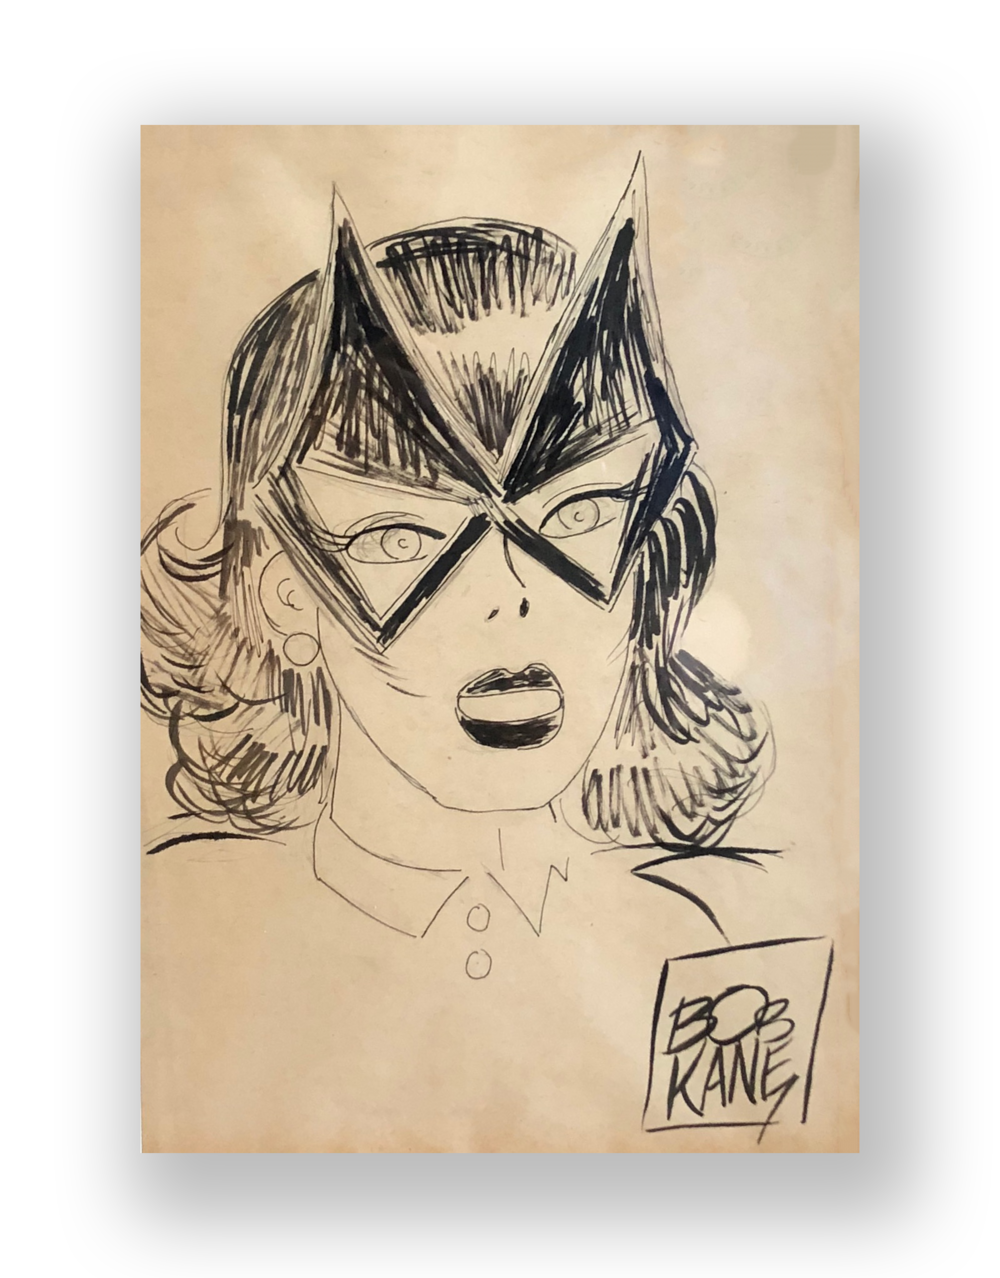 "Bob Kane  ""Batgirl""  Original vintage illustration  Mixed media on paper  8.5 x 11.5 inches  Circa 1970's  Acquired directly from him at a booth where he appeared with CC Beck at a comicon"